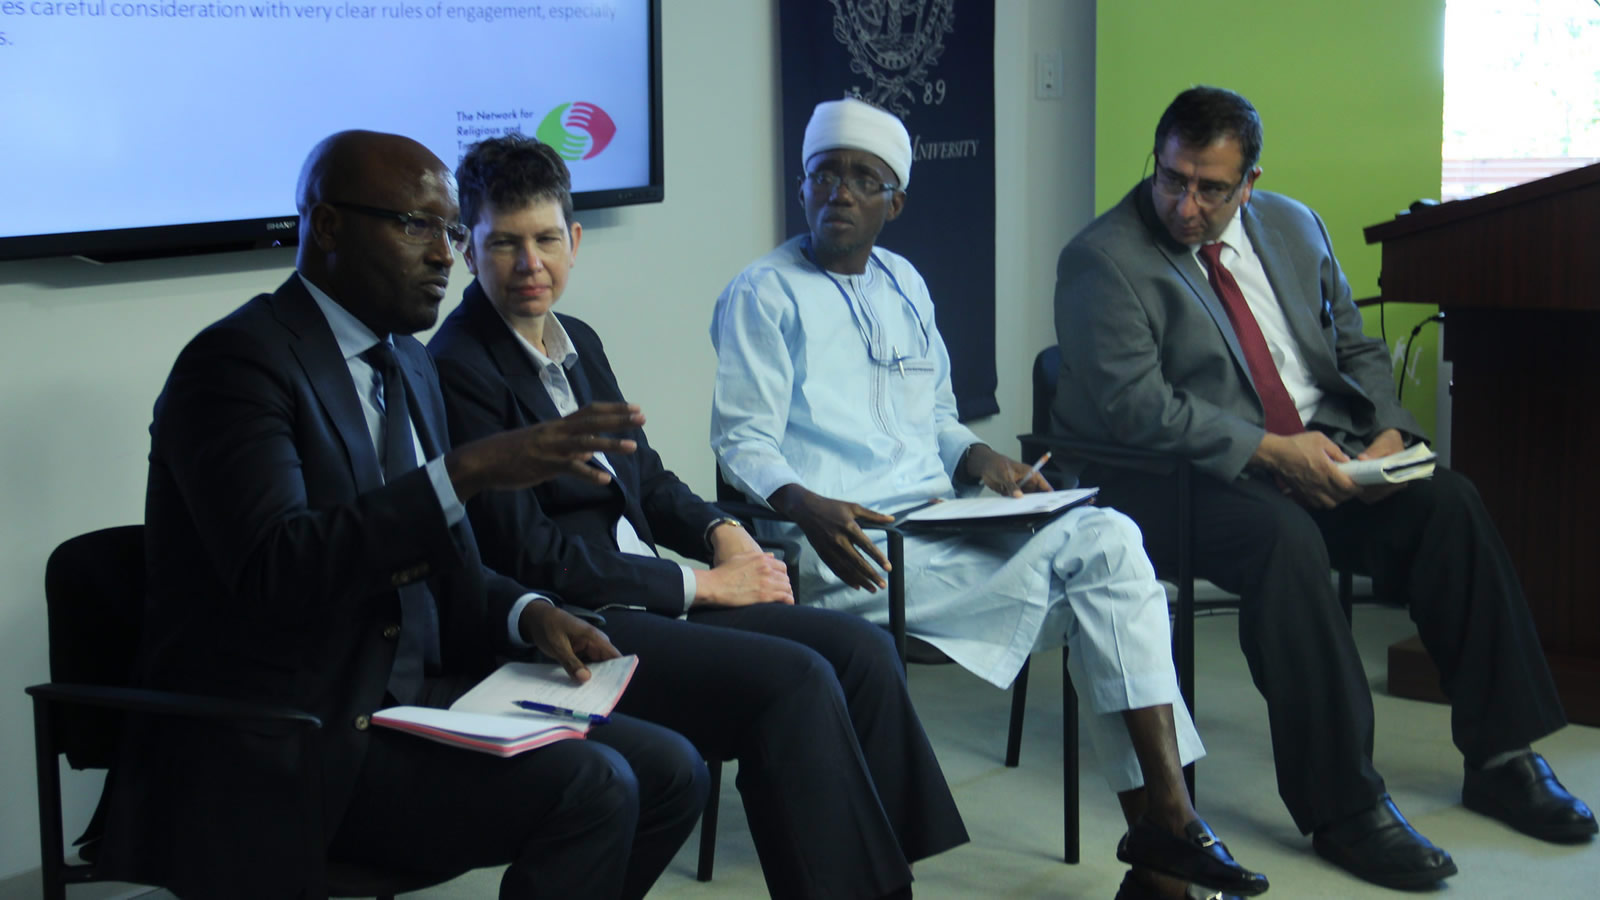 Other panelists listen to Mahdi Abdile discussing a study of former Boko Haram members.